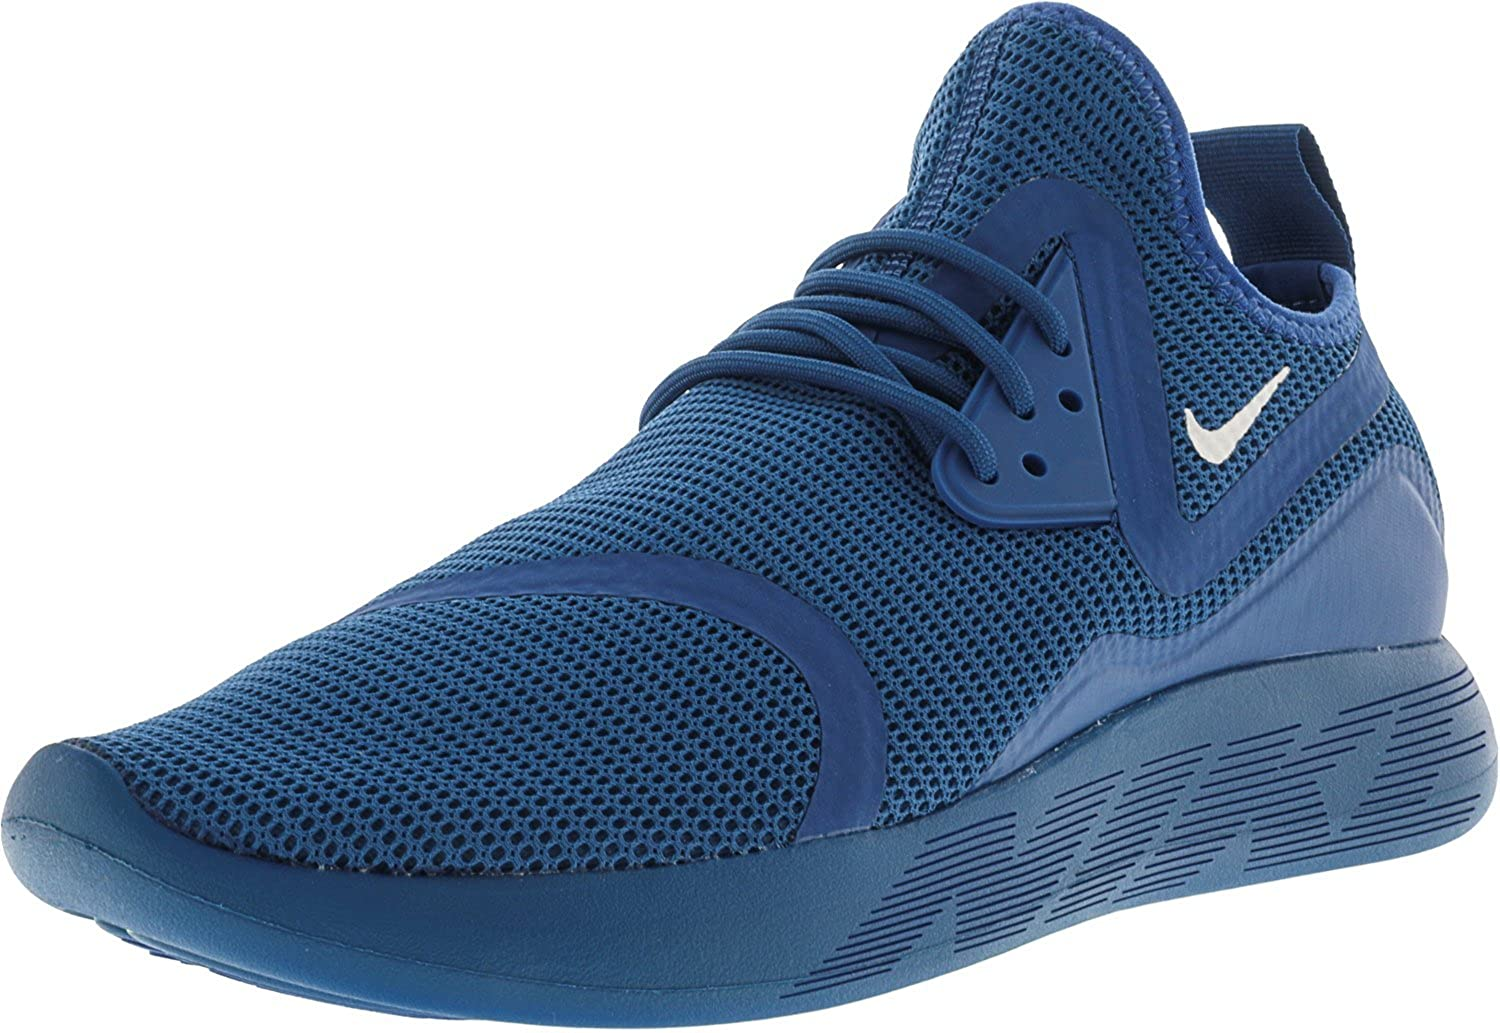 ddf66fc75cbf Nike LunarCharge Essential Men s Shoes  Amazon.co.uk  Shoes   Bags